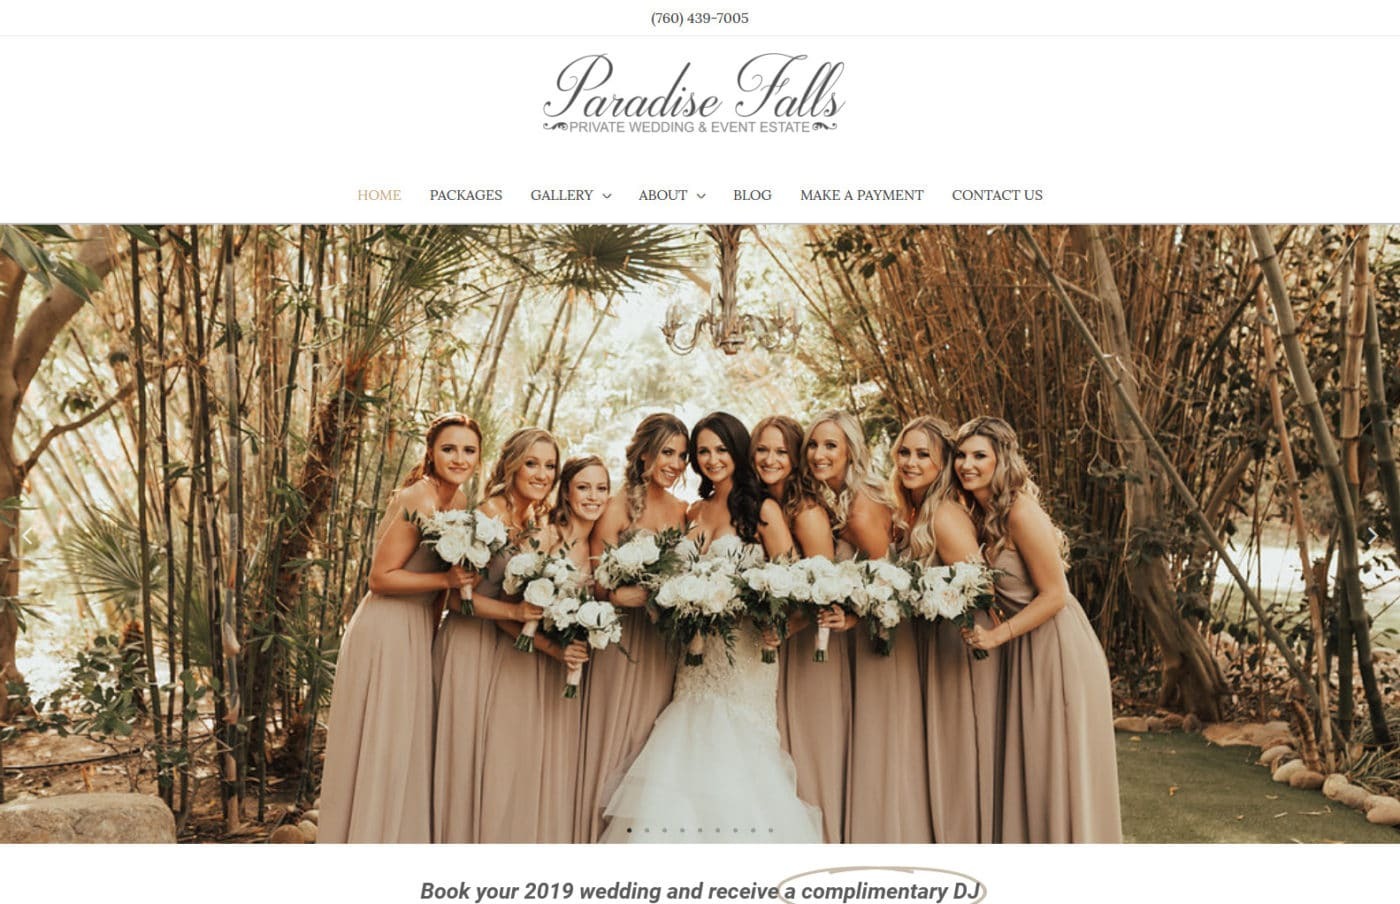 California web design and website development for a wedding venue Paradise Falls Weddings in Oceanside CA